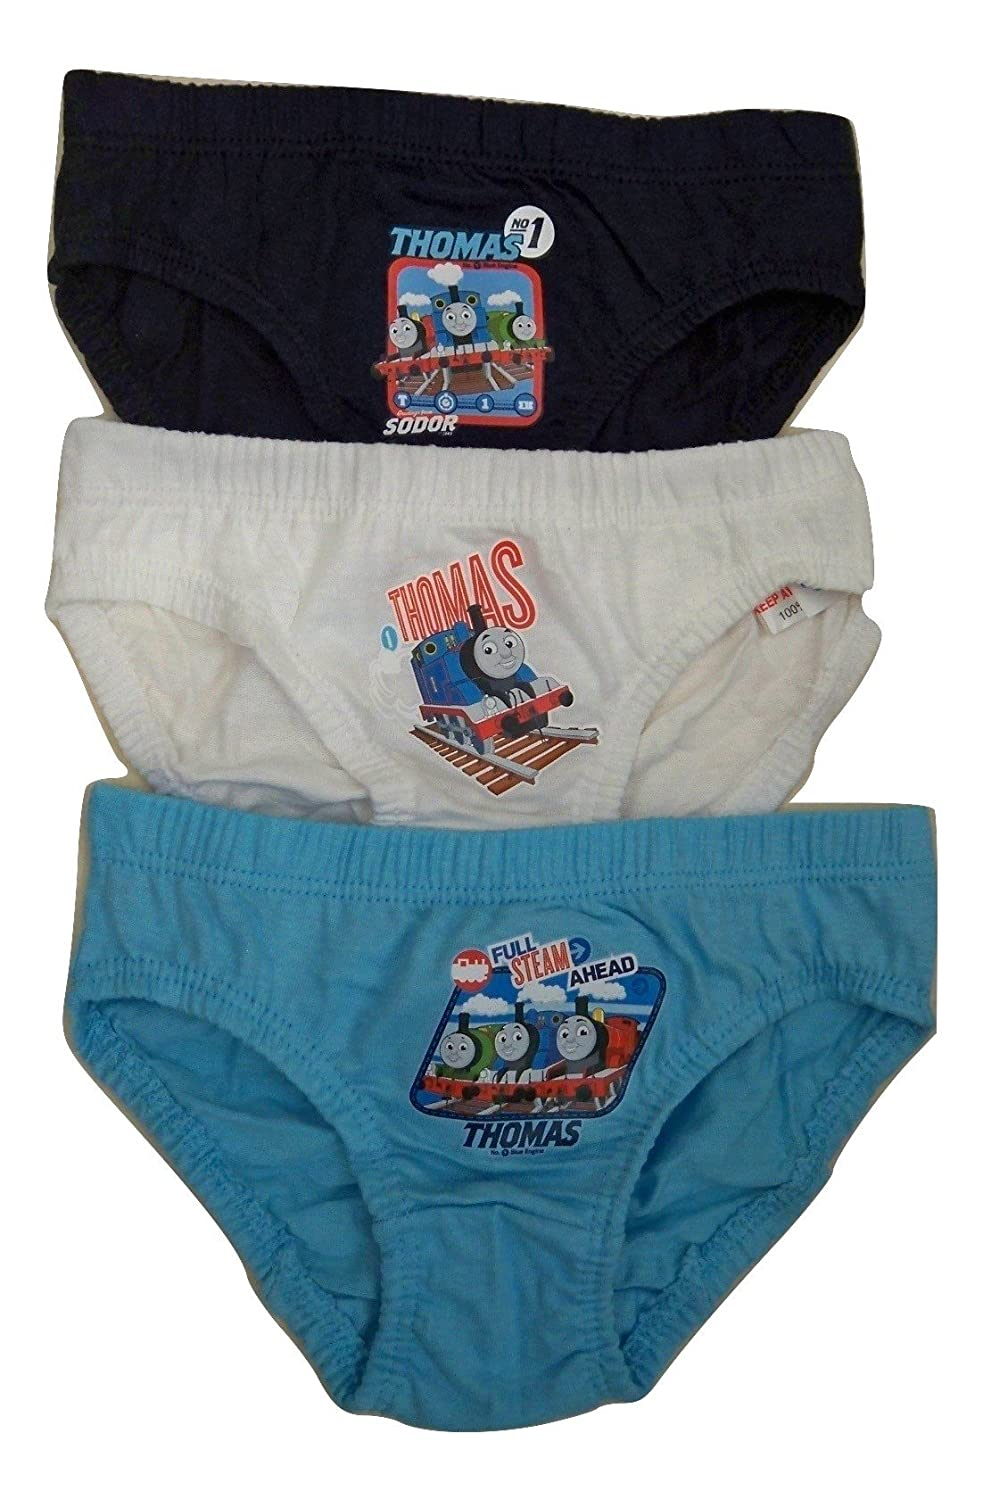 Thomas the Tank Engine Baby Boys Briefs 3 Pack 18-24 Months, Thomas and Friends Briefs